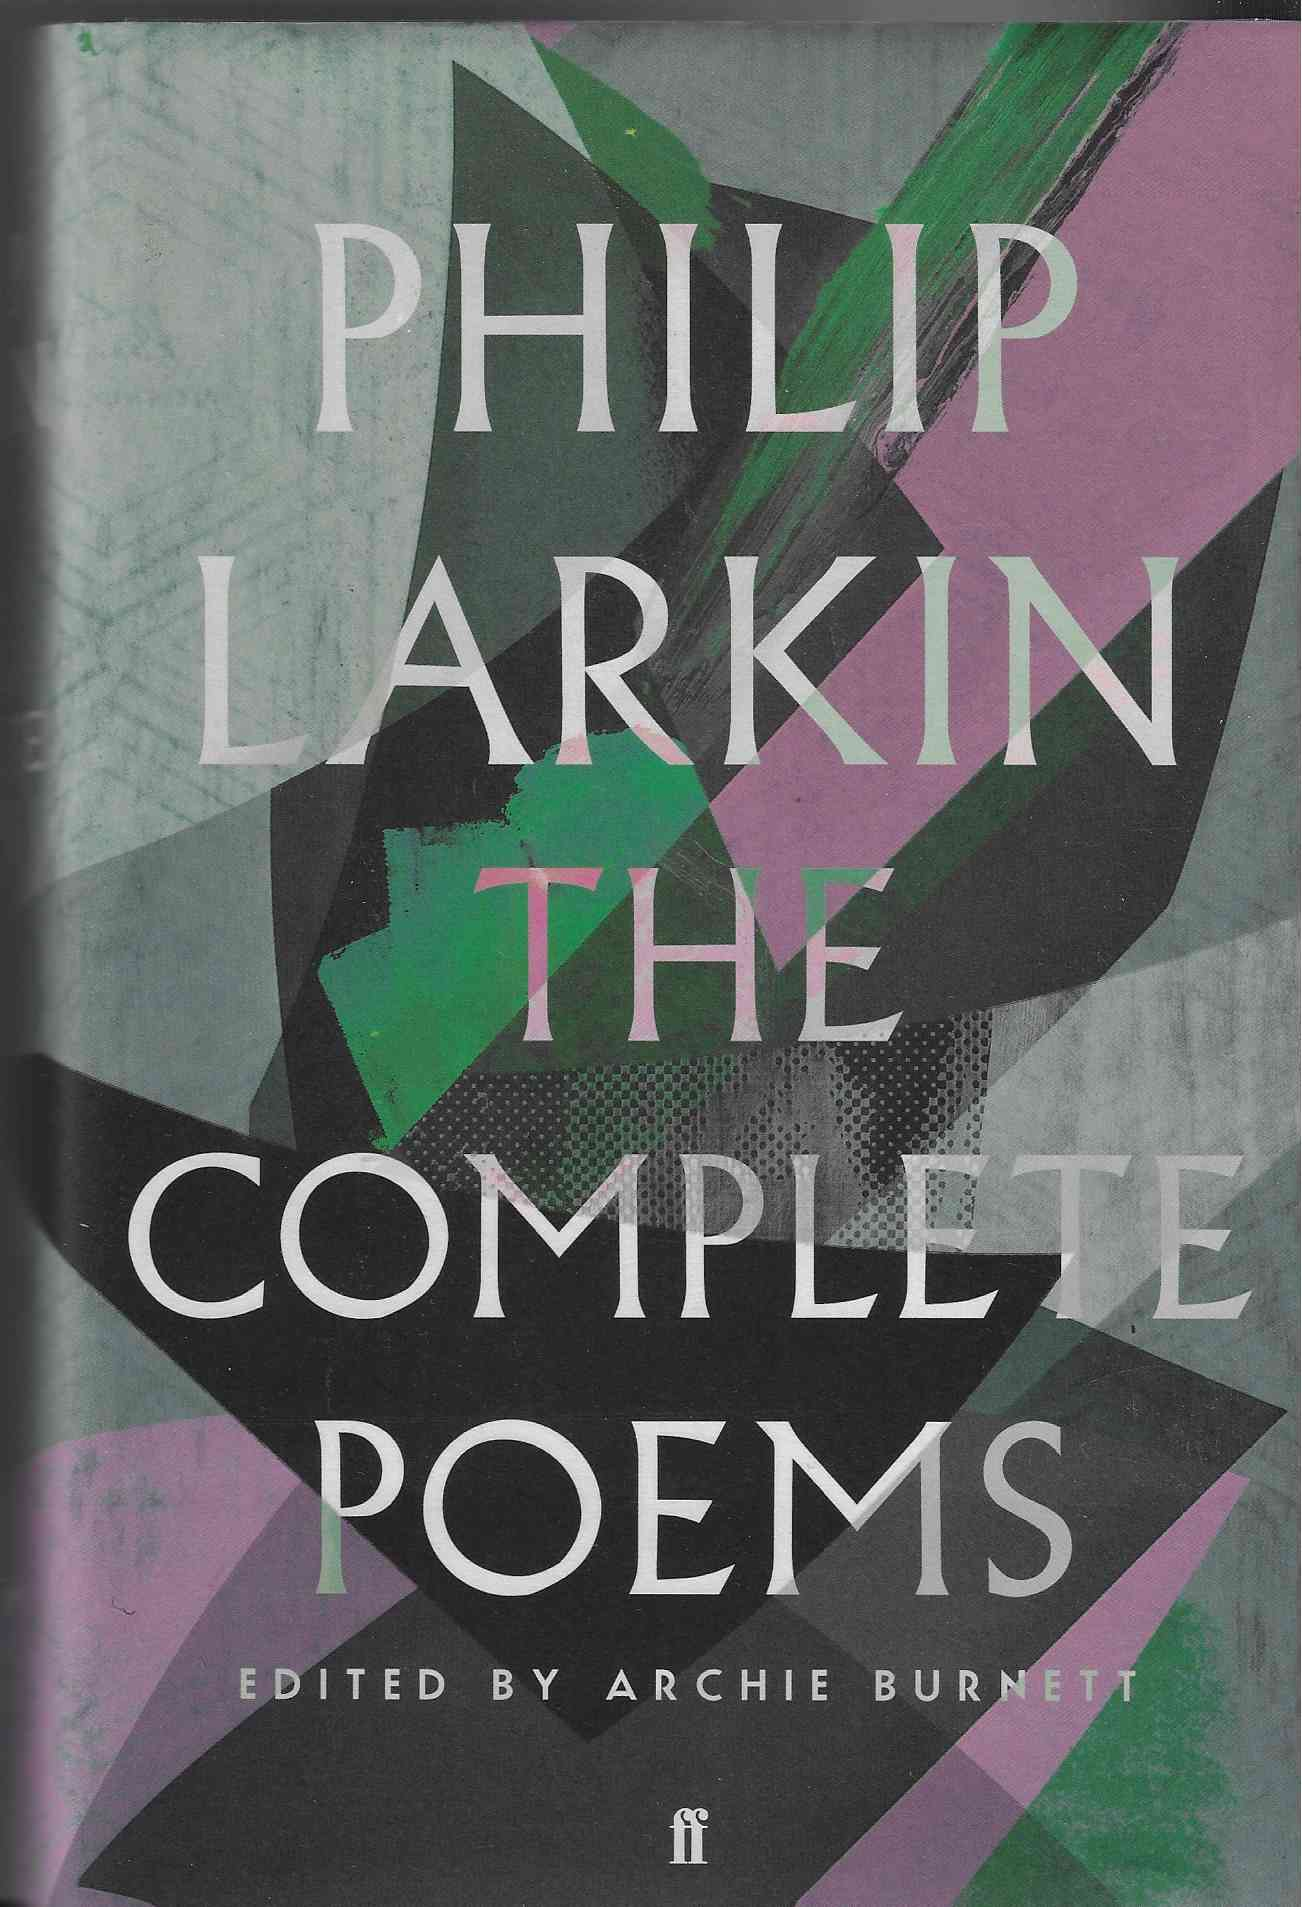 Image for The Complete Poems of Philip Larkin